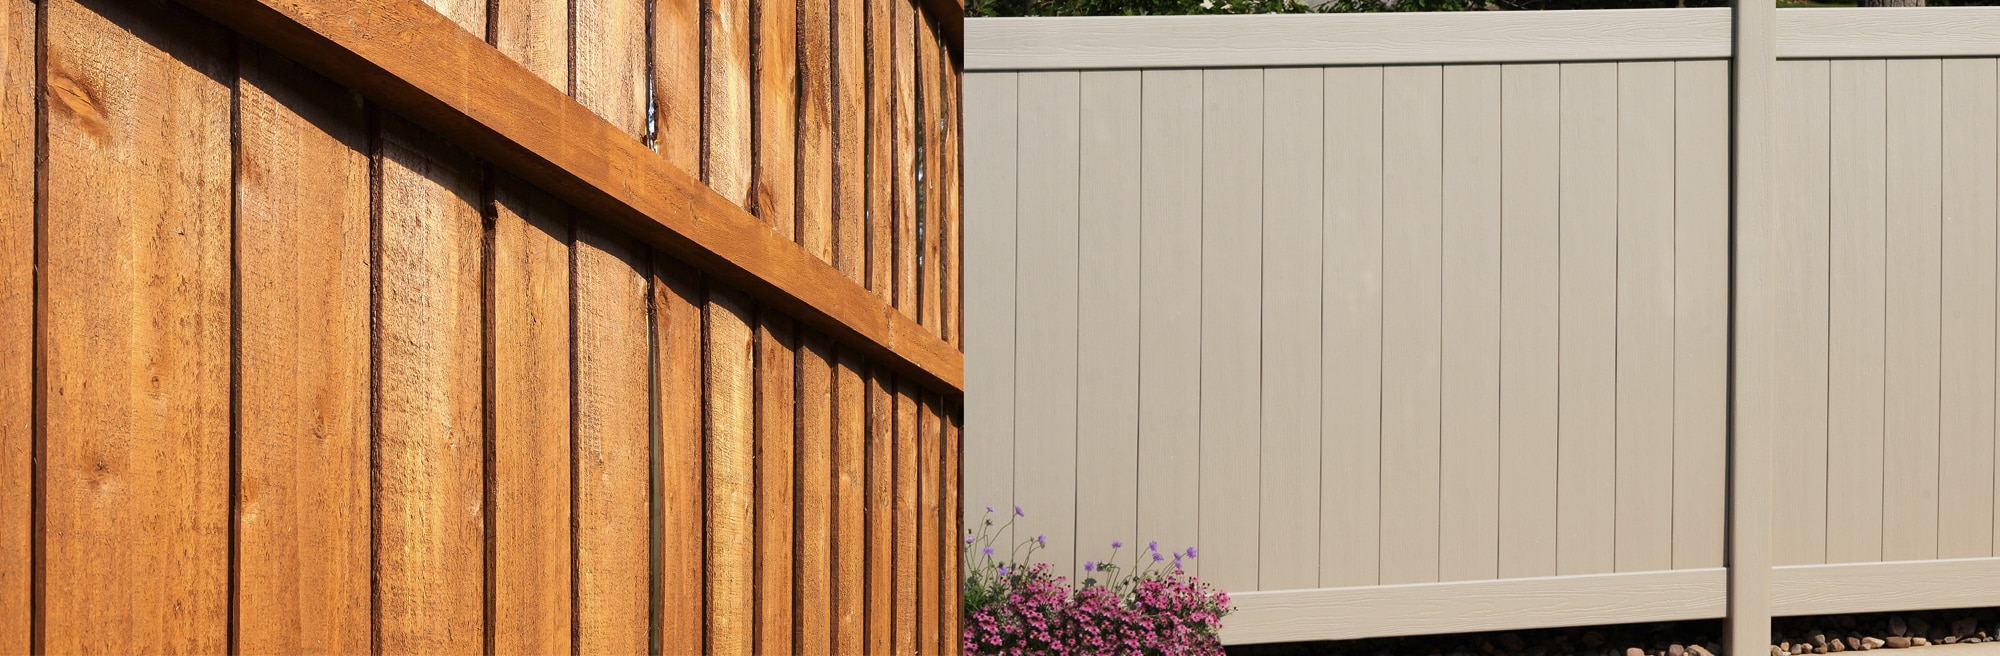 Wood Fencing vs. Vinyl Fencing